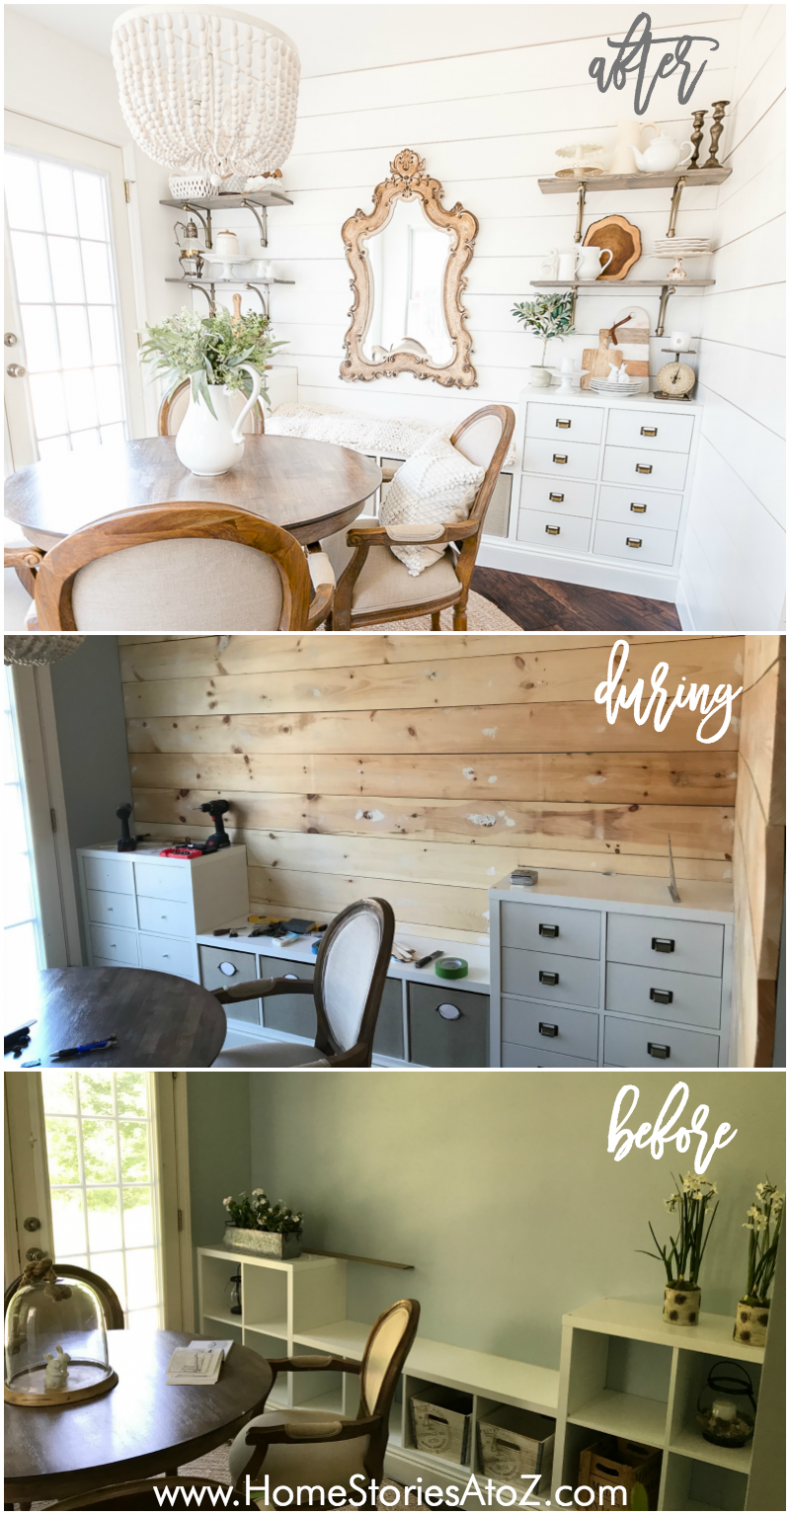 Simple Building Projects to Add Character to Your Home - How to Create a Shiplap Wall by Home Stories A to Z